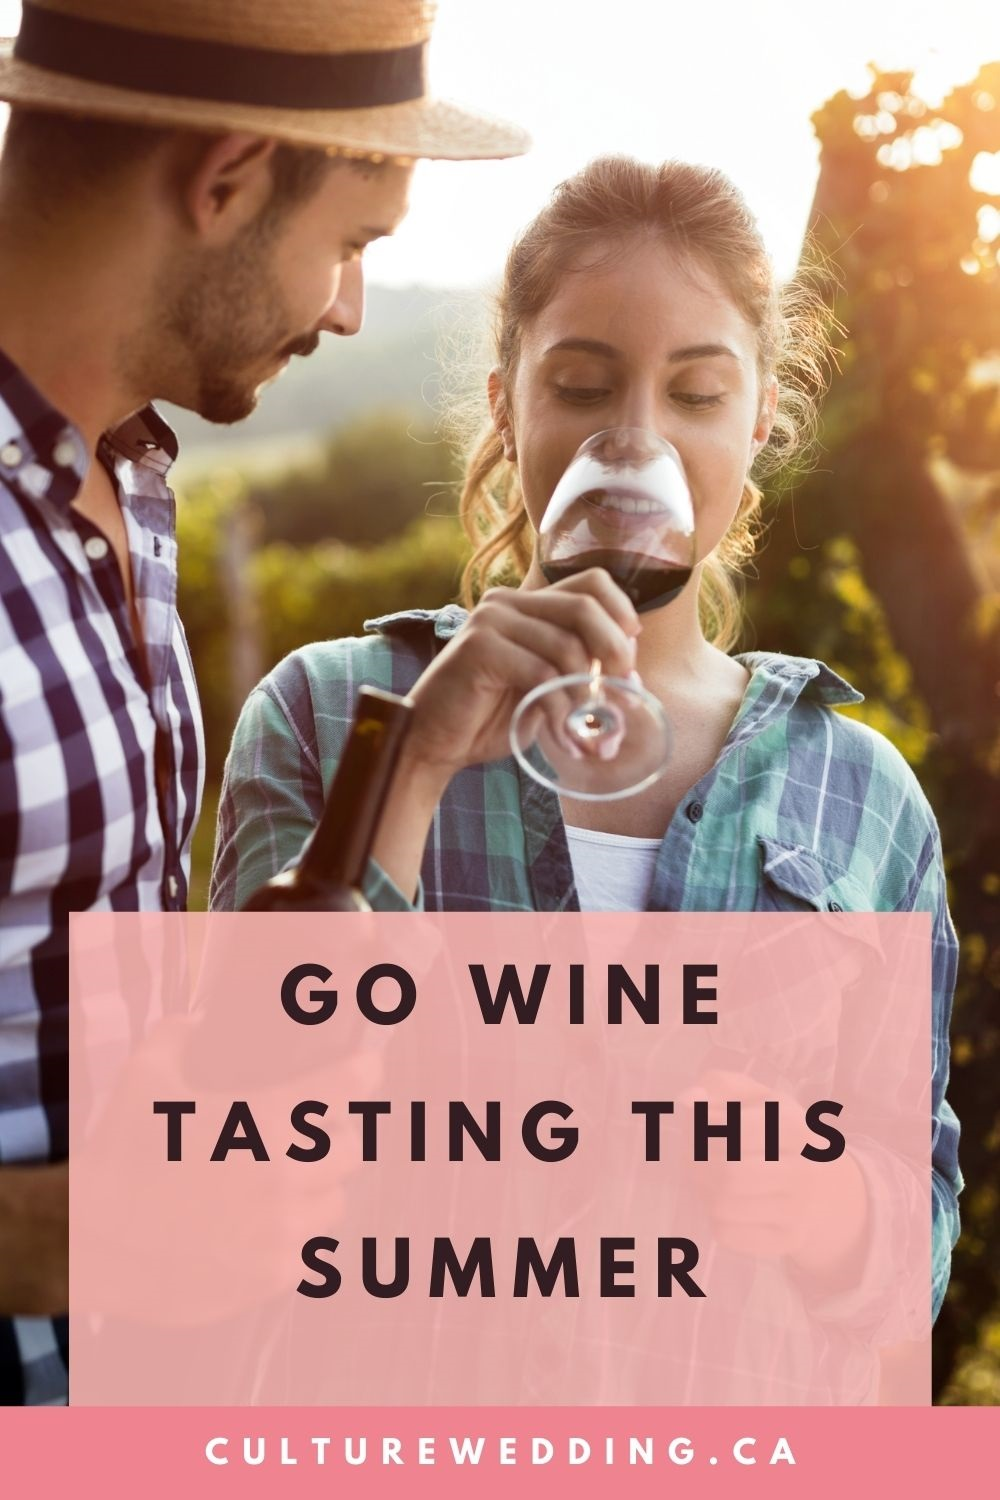 Put wine tasking on your couples bucket list idea this year. Make a bucket list for couples and complete it.